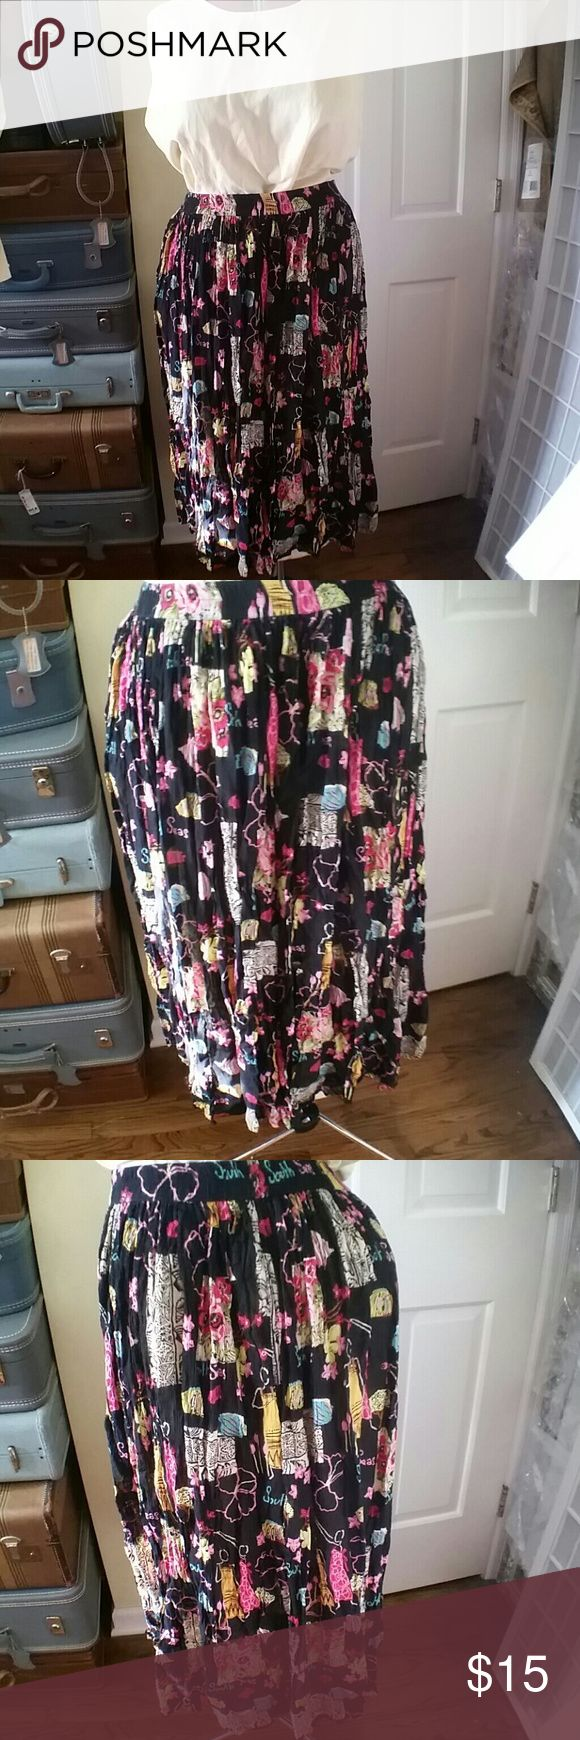 Tropical Fashion Faux linen broomstick skirt Tropical Fashion print faux linen broomstick shirt. Elastic waist... This fits like a freesize skirt for plus size people... Think 16-32 White Stag Skirts Maxi